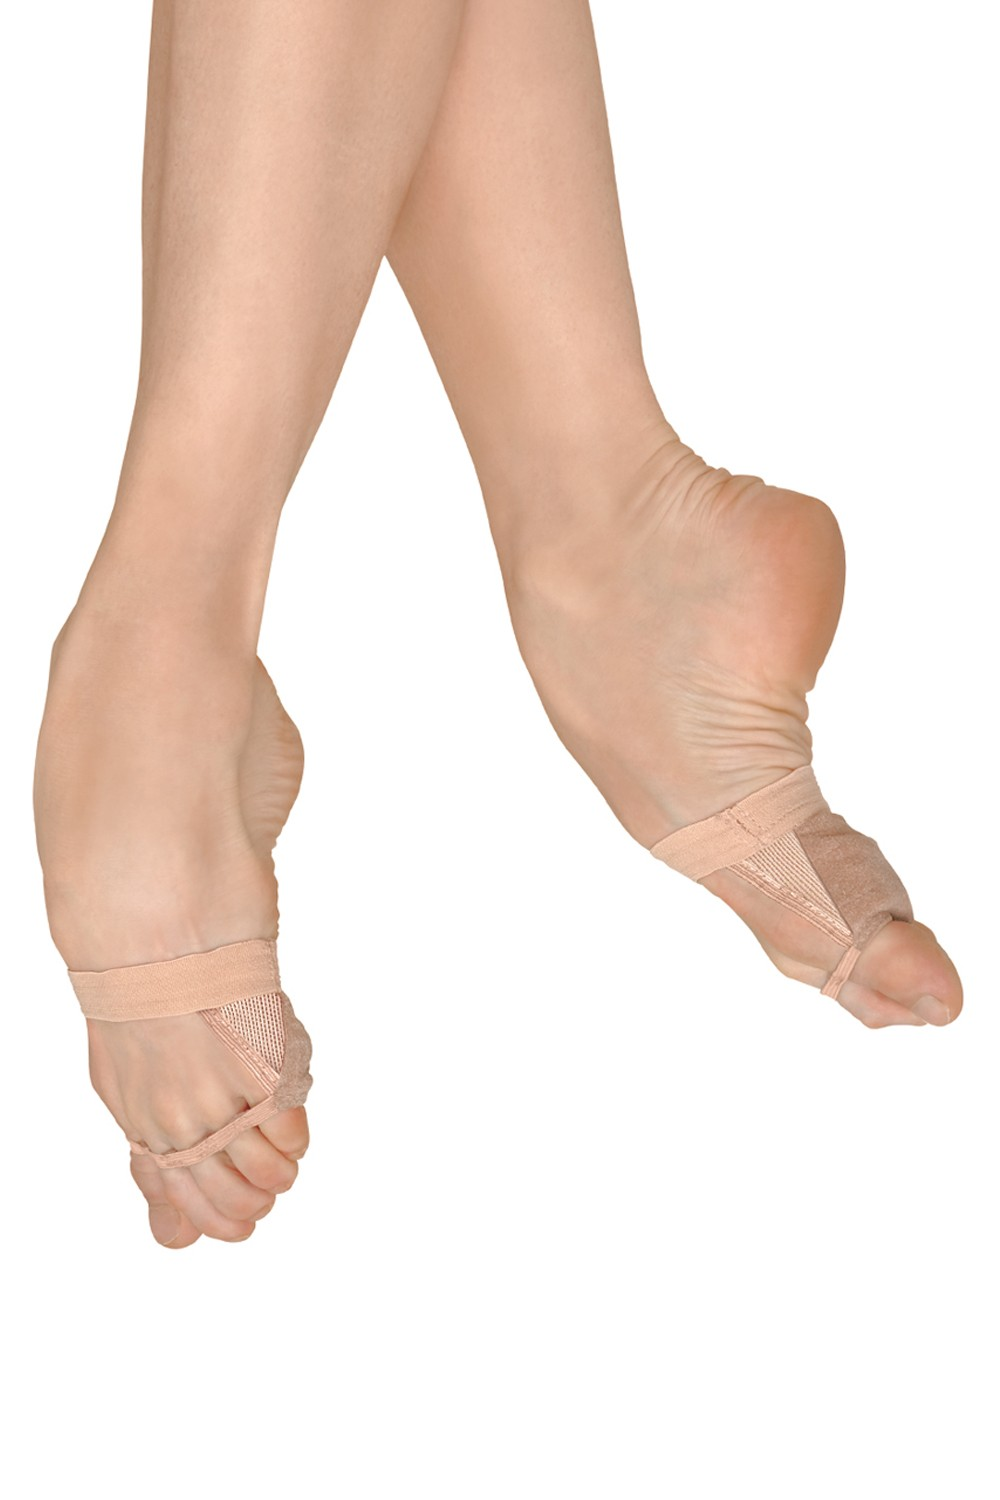 Women's Contemporary Dance Shoes